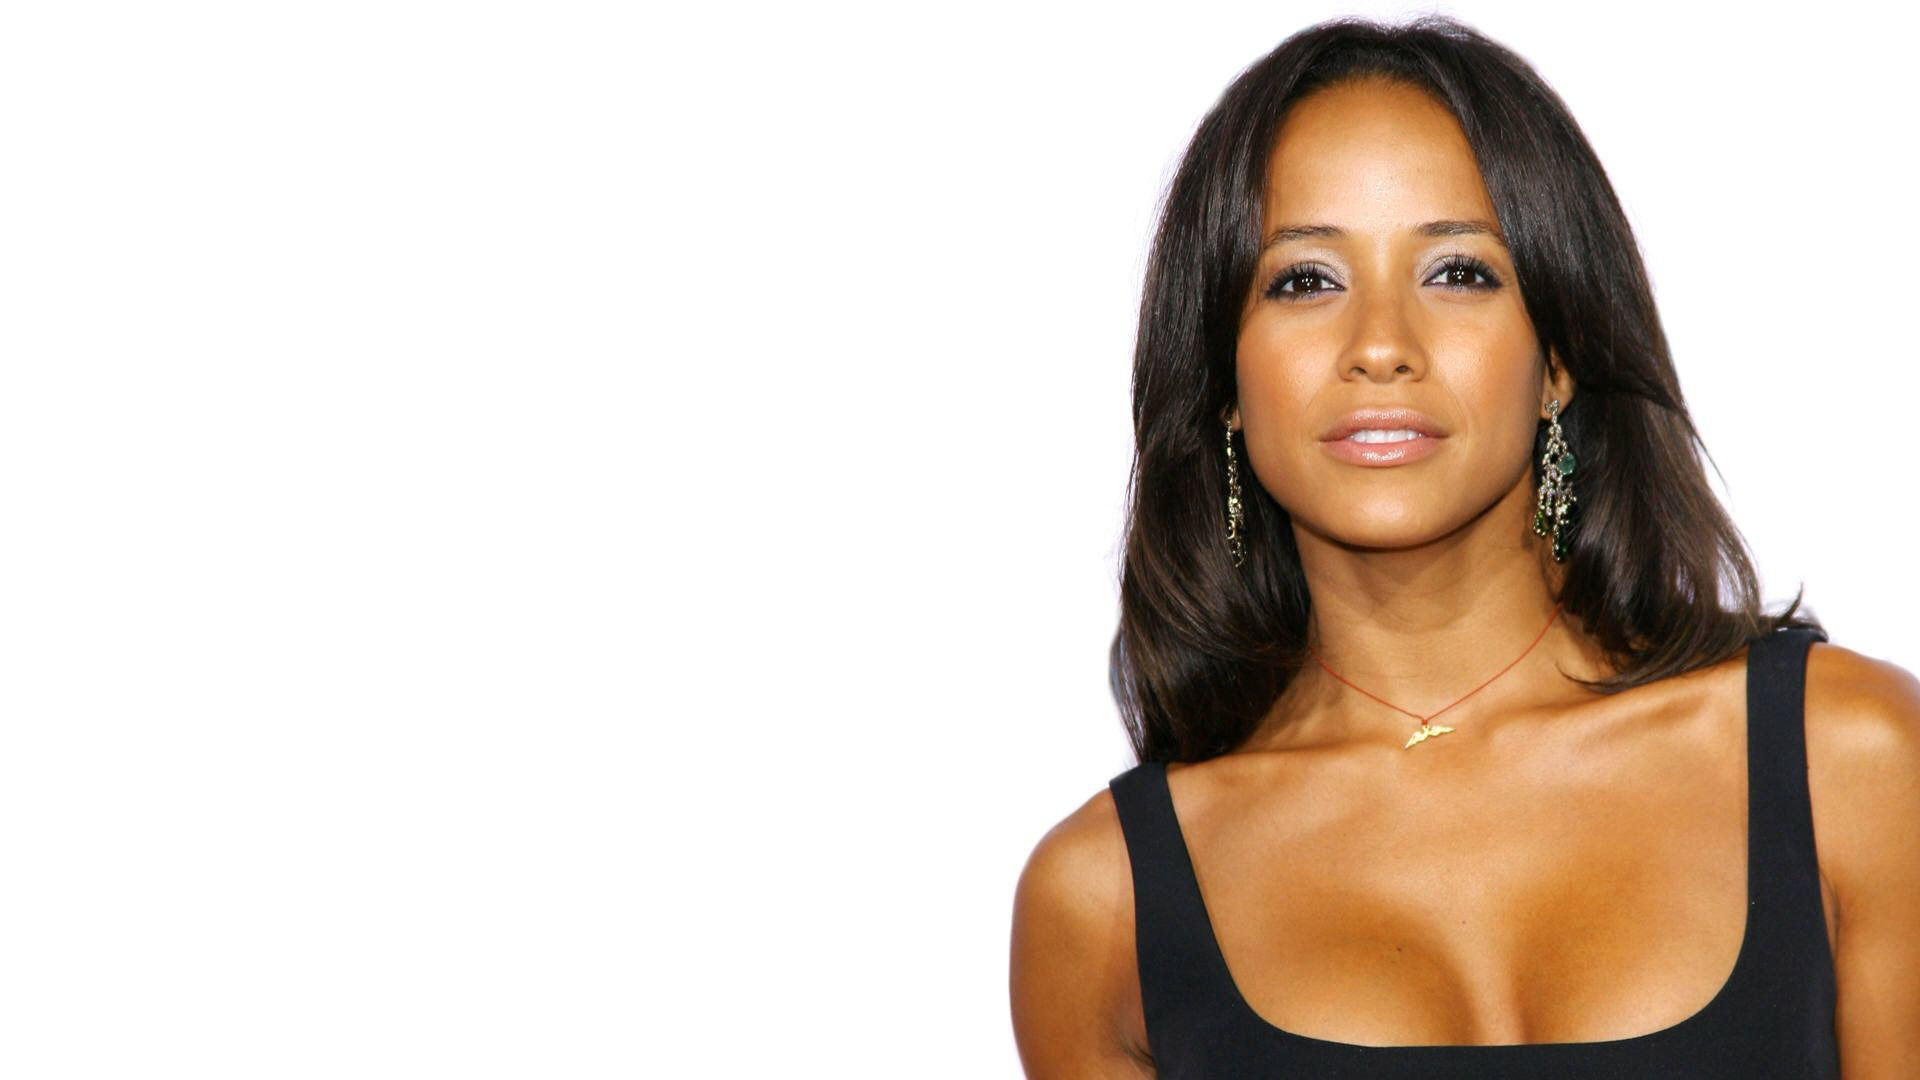 Free Dania Ramirez high quality background ID:125550 for full hd 1920x1080 computer